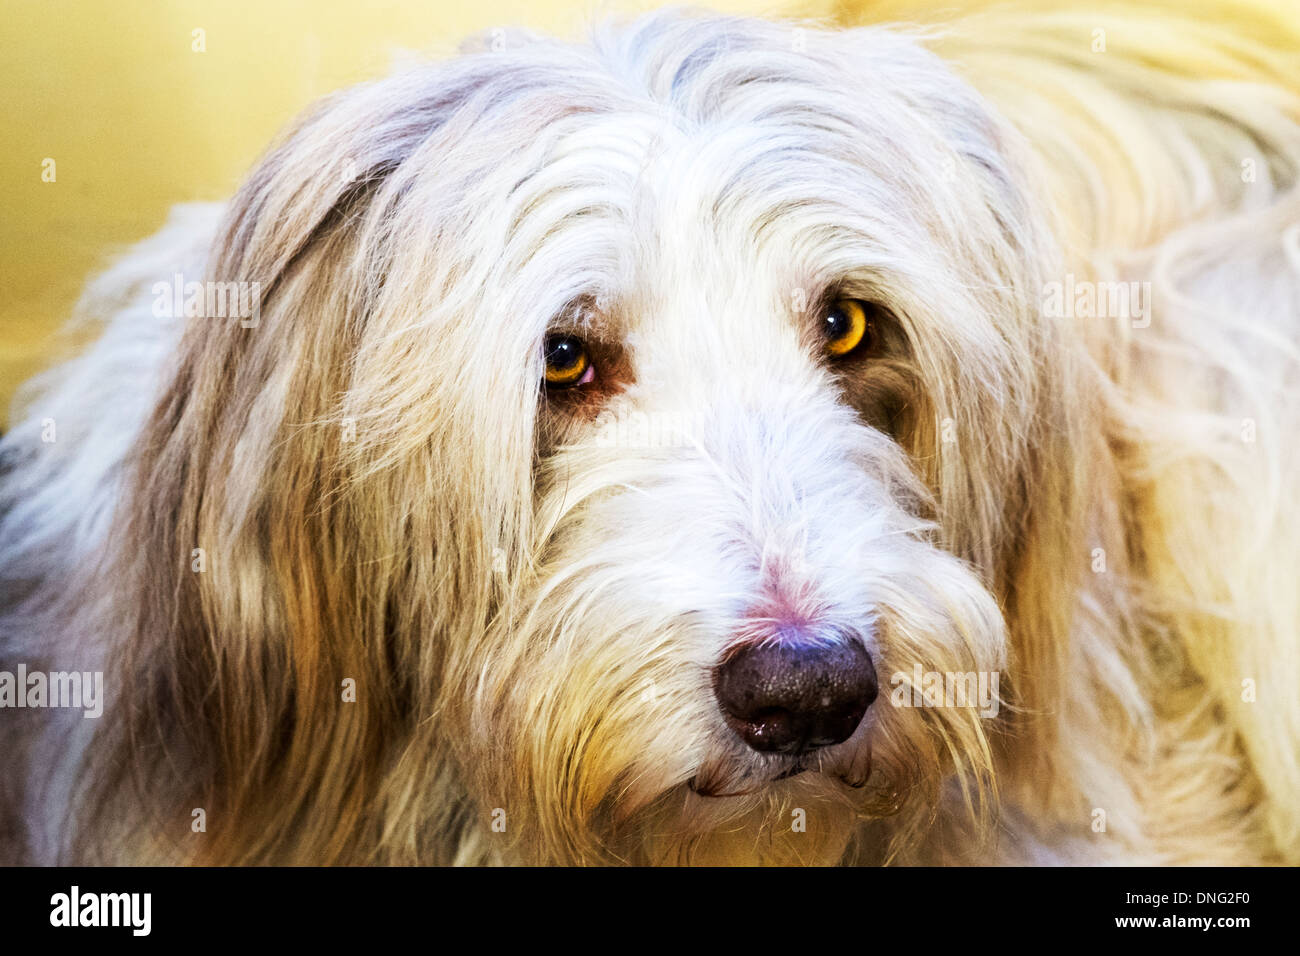 Bearded collie pet dog canine yellow eyes cute - Stock Image